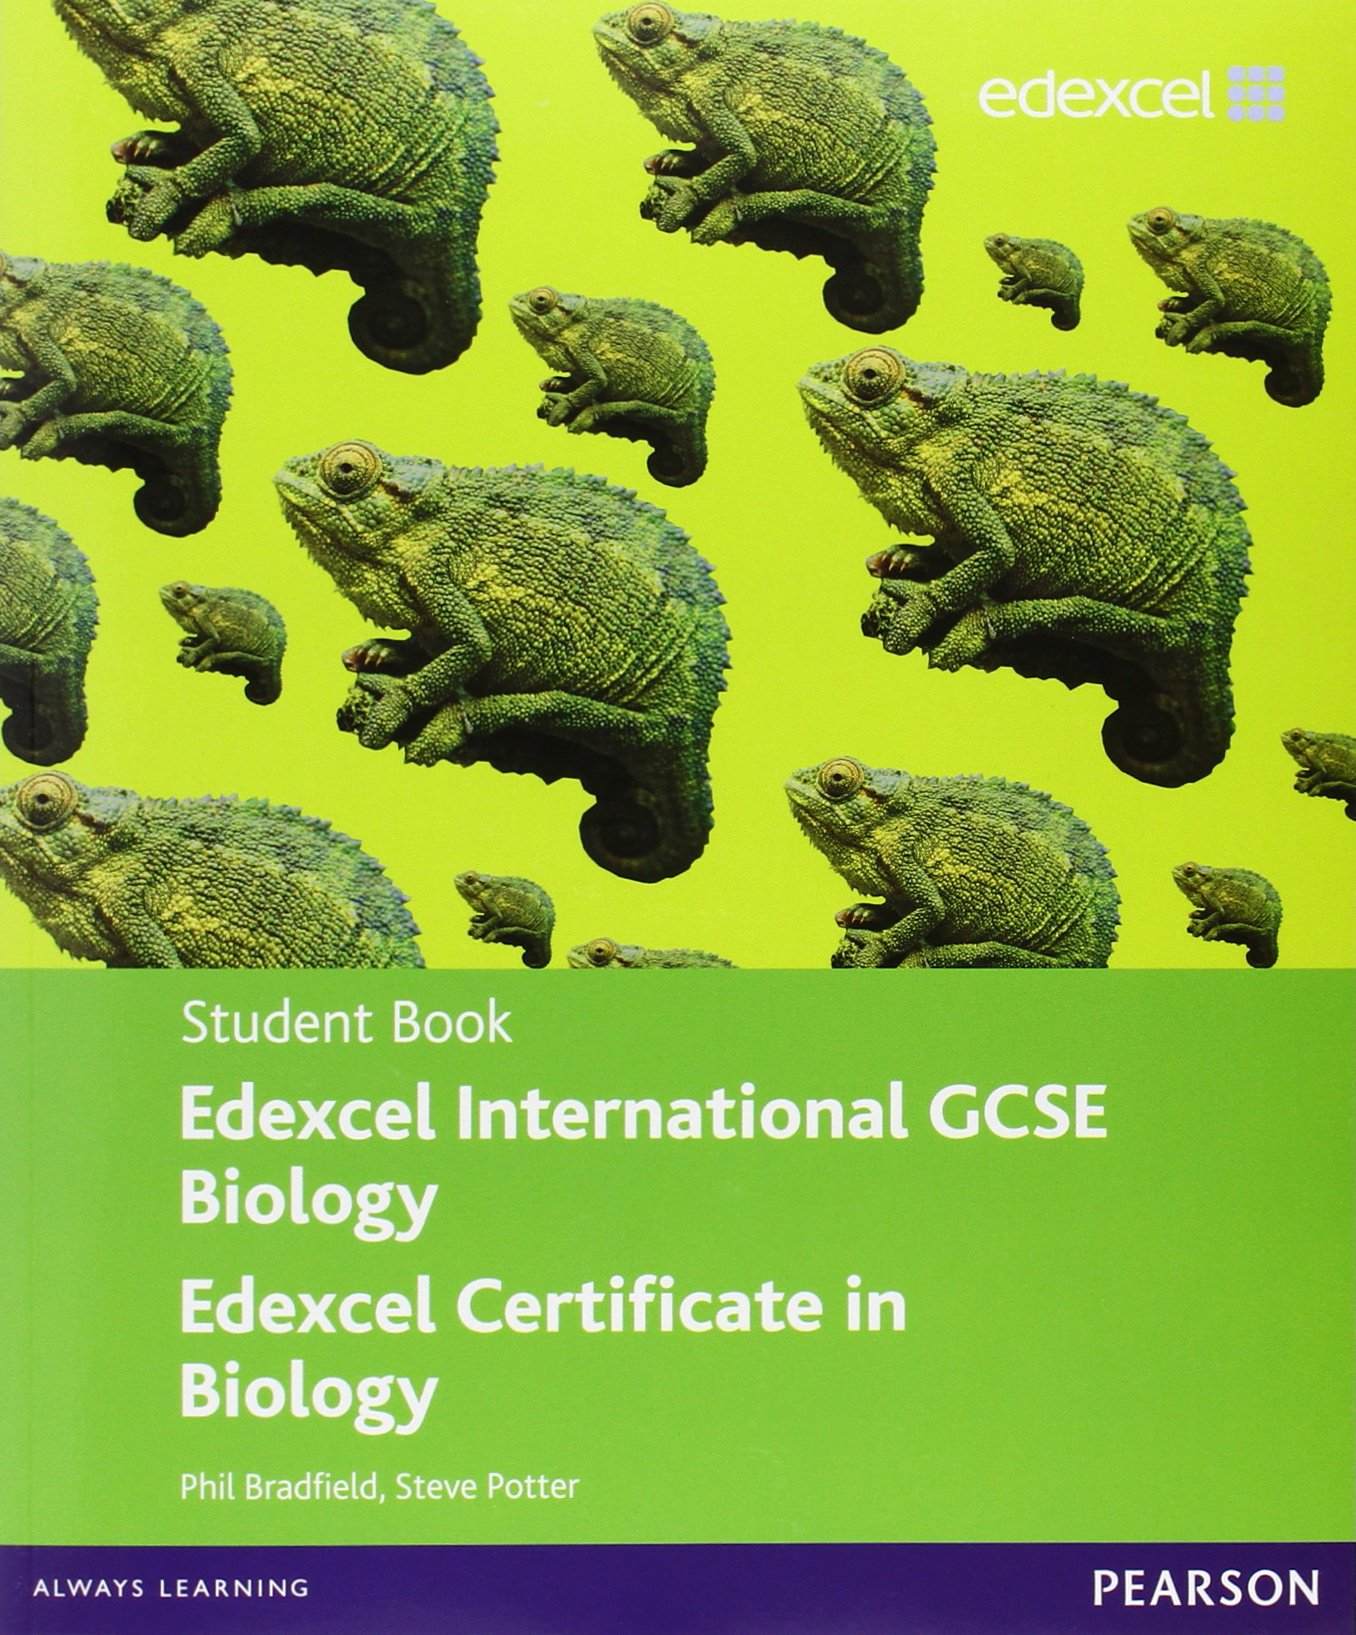 biology coursework specification Edexcel as level biology coursework help  studying this specification biology edexcel a level in biology has been designed to engage and inspire students by showing how an understanding of many contemporary issues requires a grasp of fundamental biological ideas visit help edexcel students facebook page.